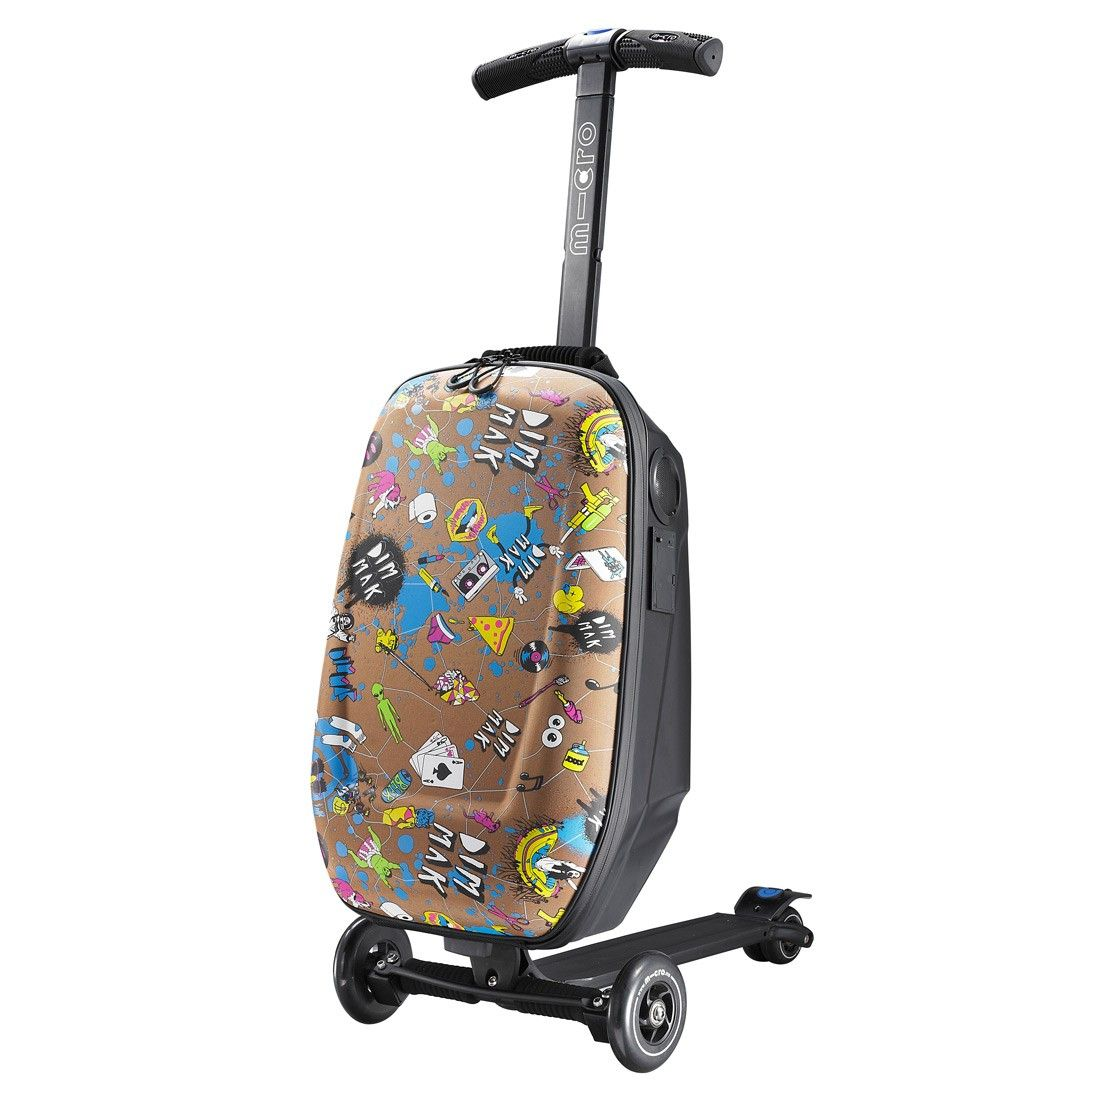 Micro 3in1 Luggage Scooter Aoki | Micro Scooters UK | Kids ...